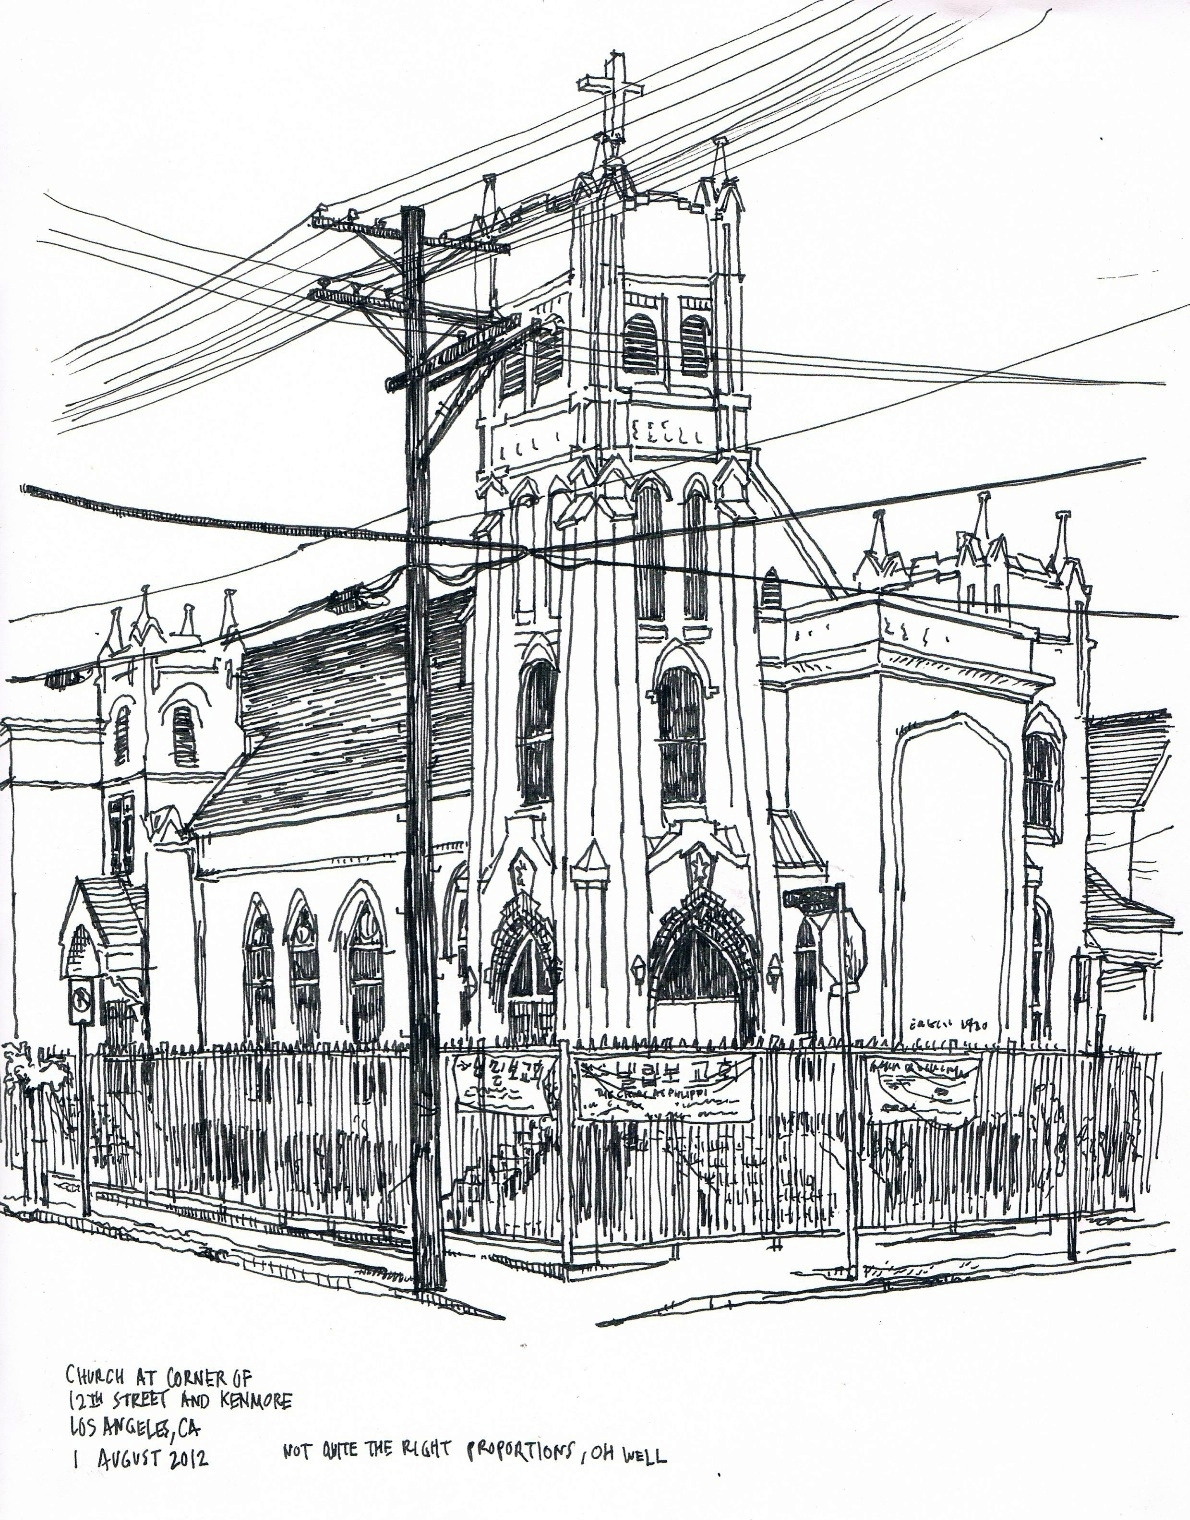 Church At 12th And Kenmore 1 August